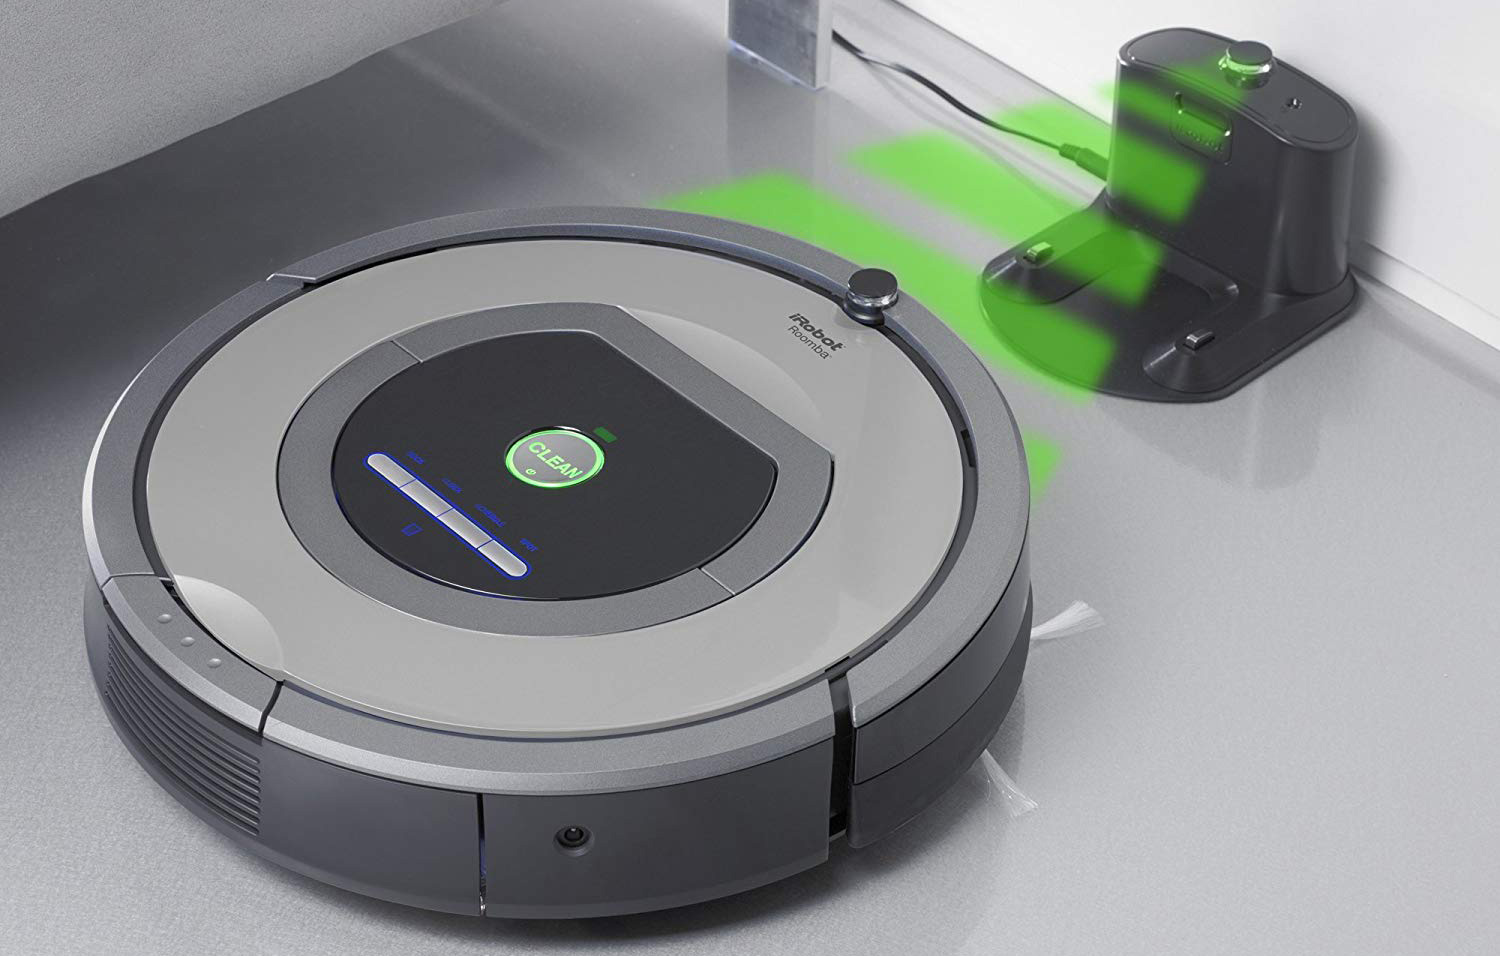 iRobot Roomba 761 vs 650 Comparison Guide | Which One is Better?